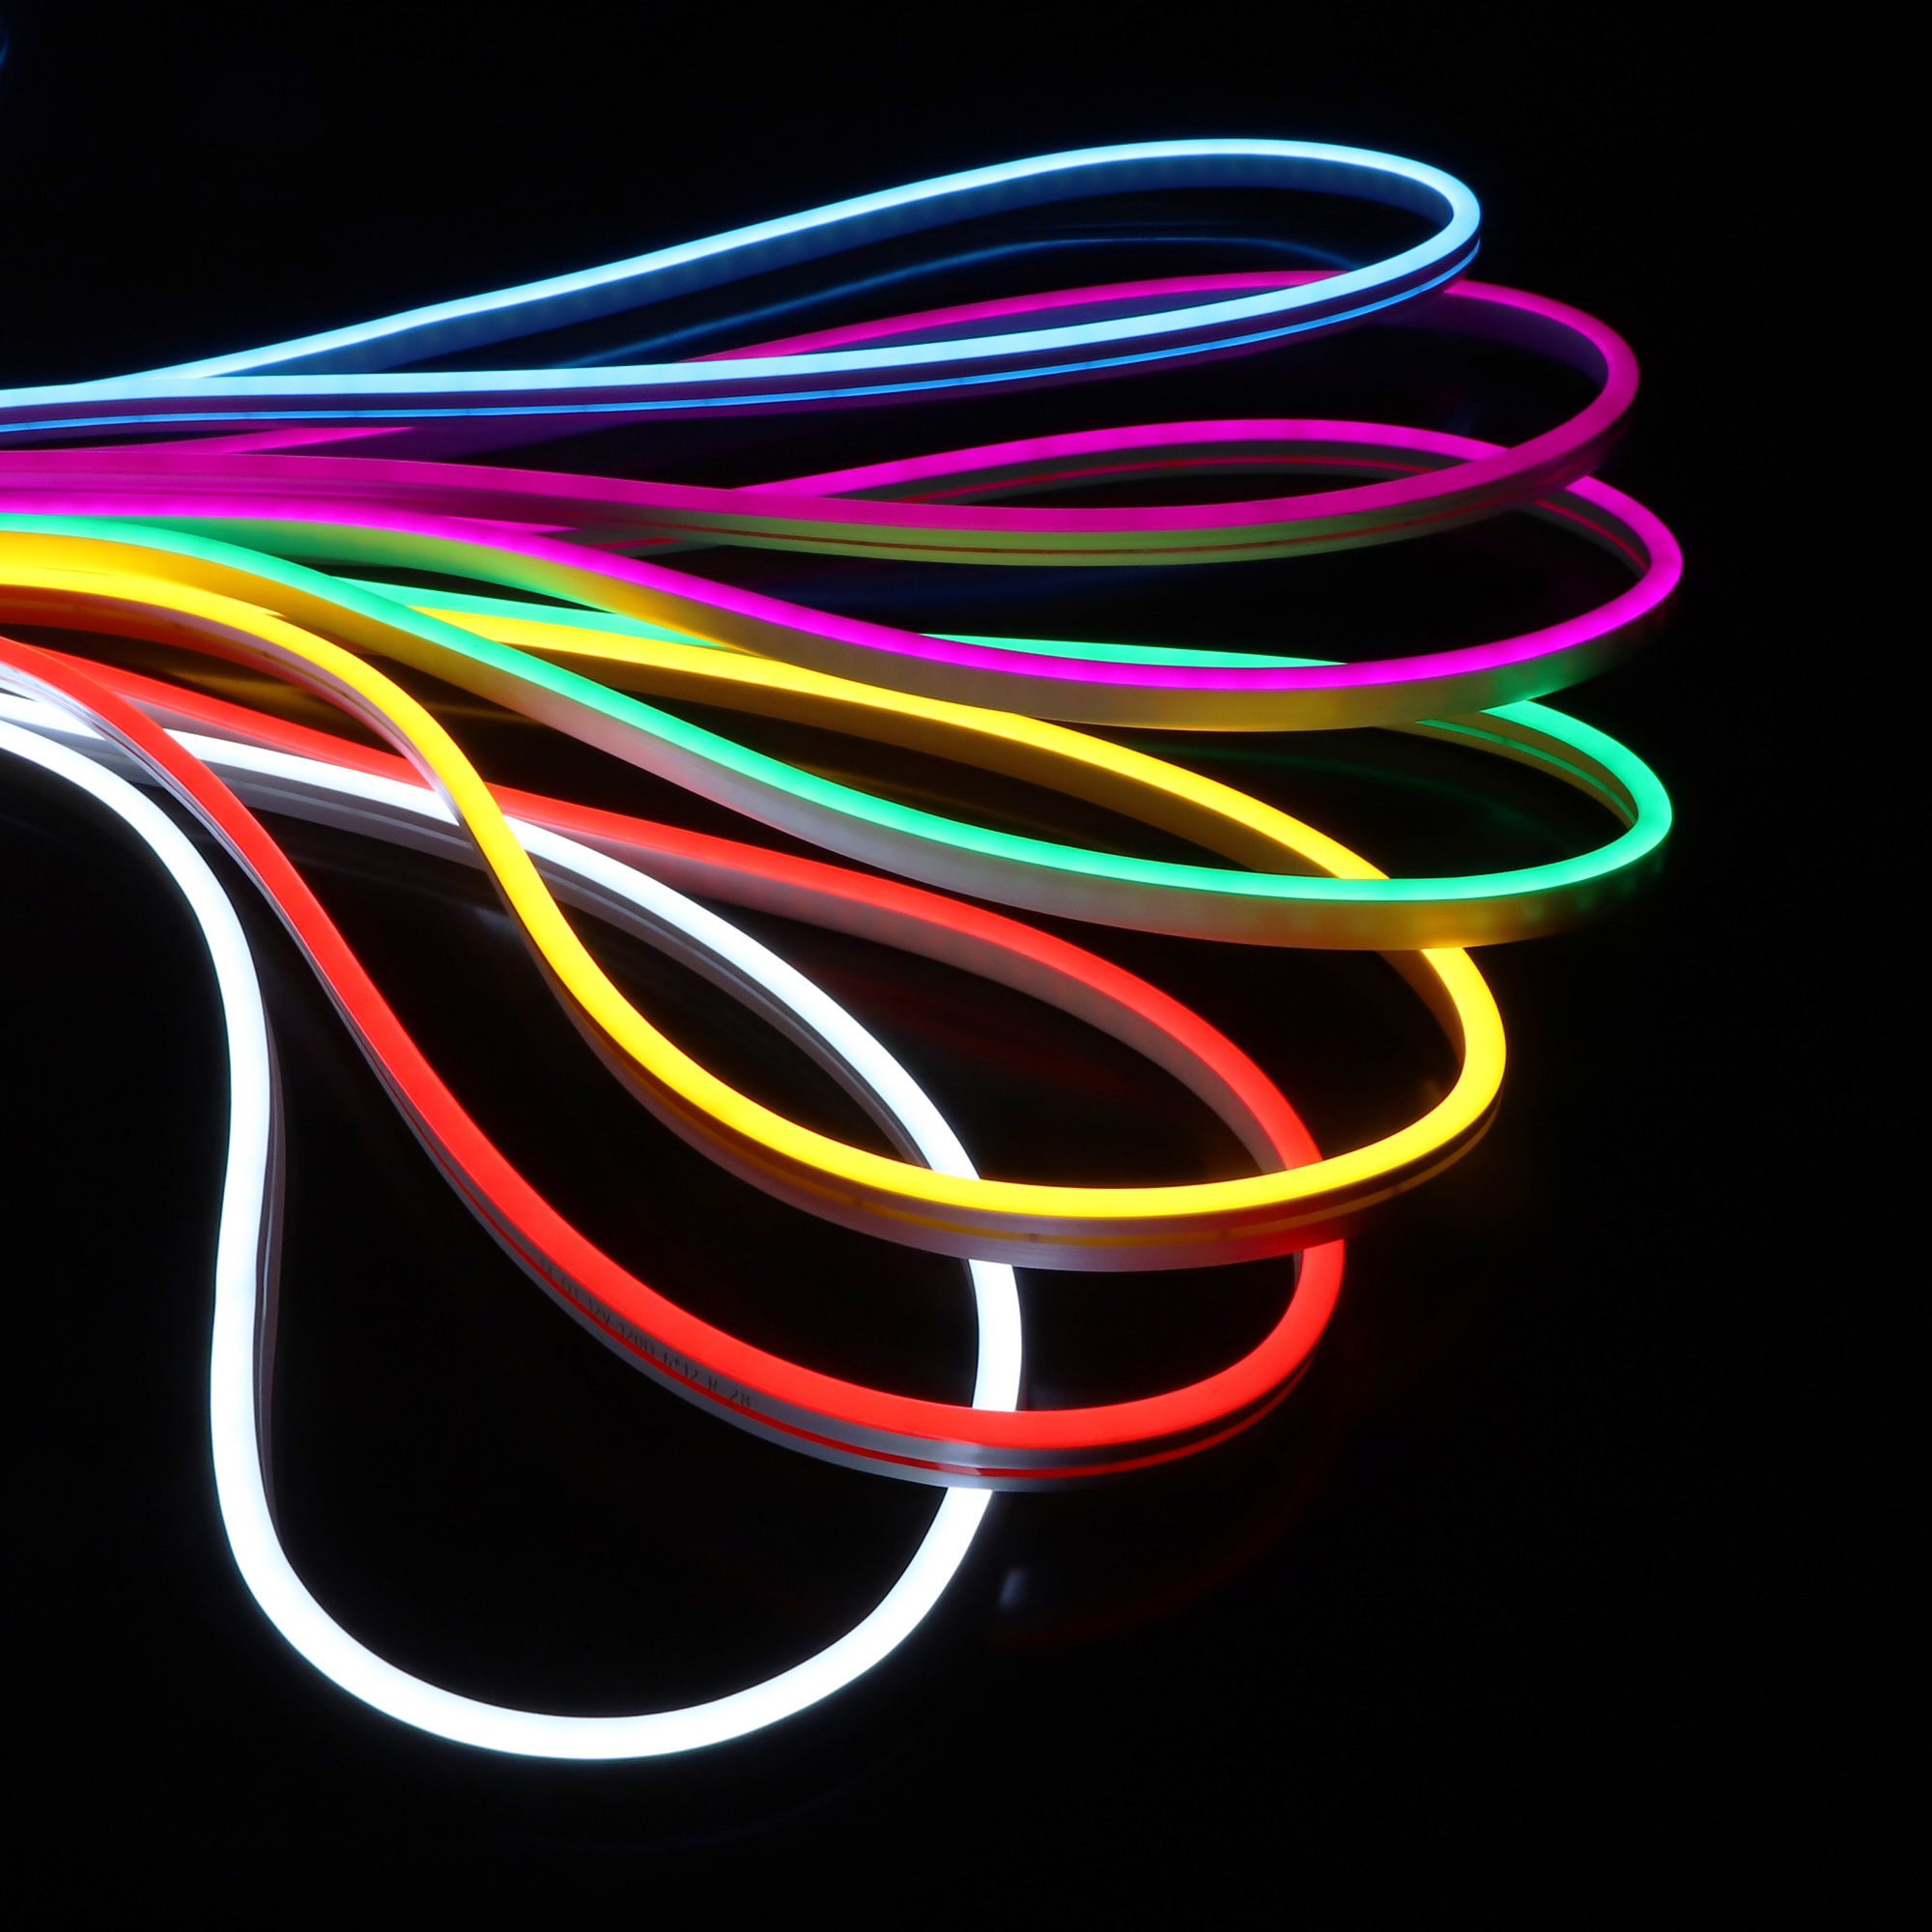 SOMPOM factory price  12v neon led light strip 6*12mm 5M/roll  led silicone strip for outdoor and indoor decoration